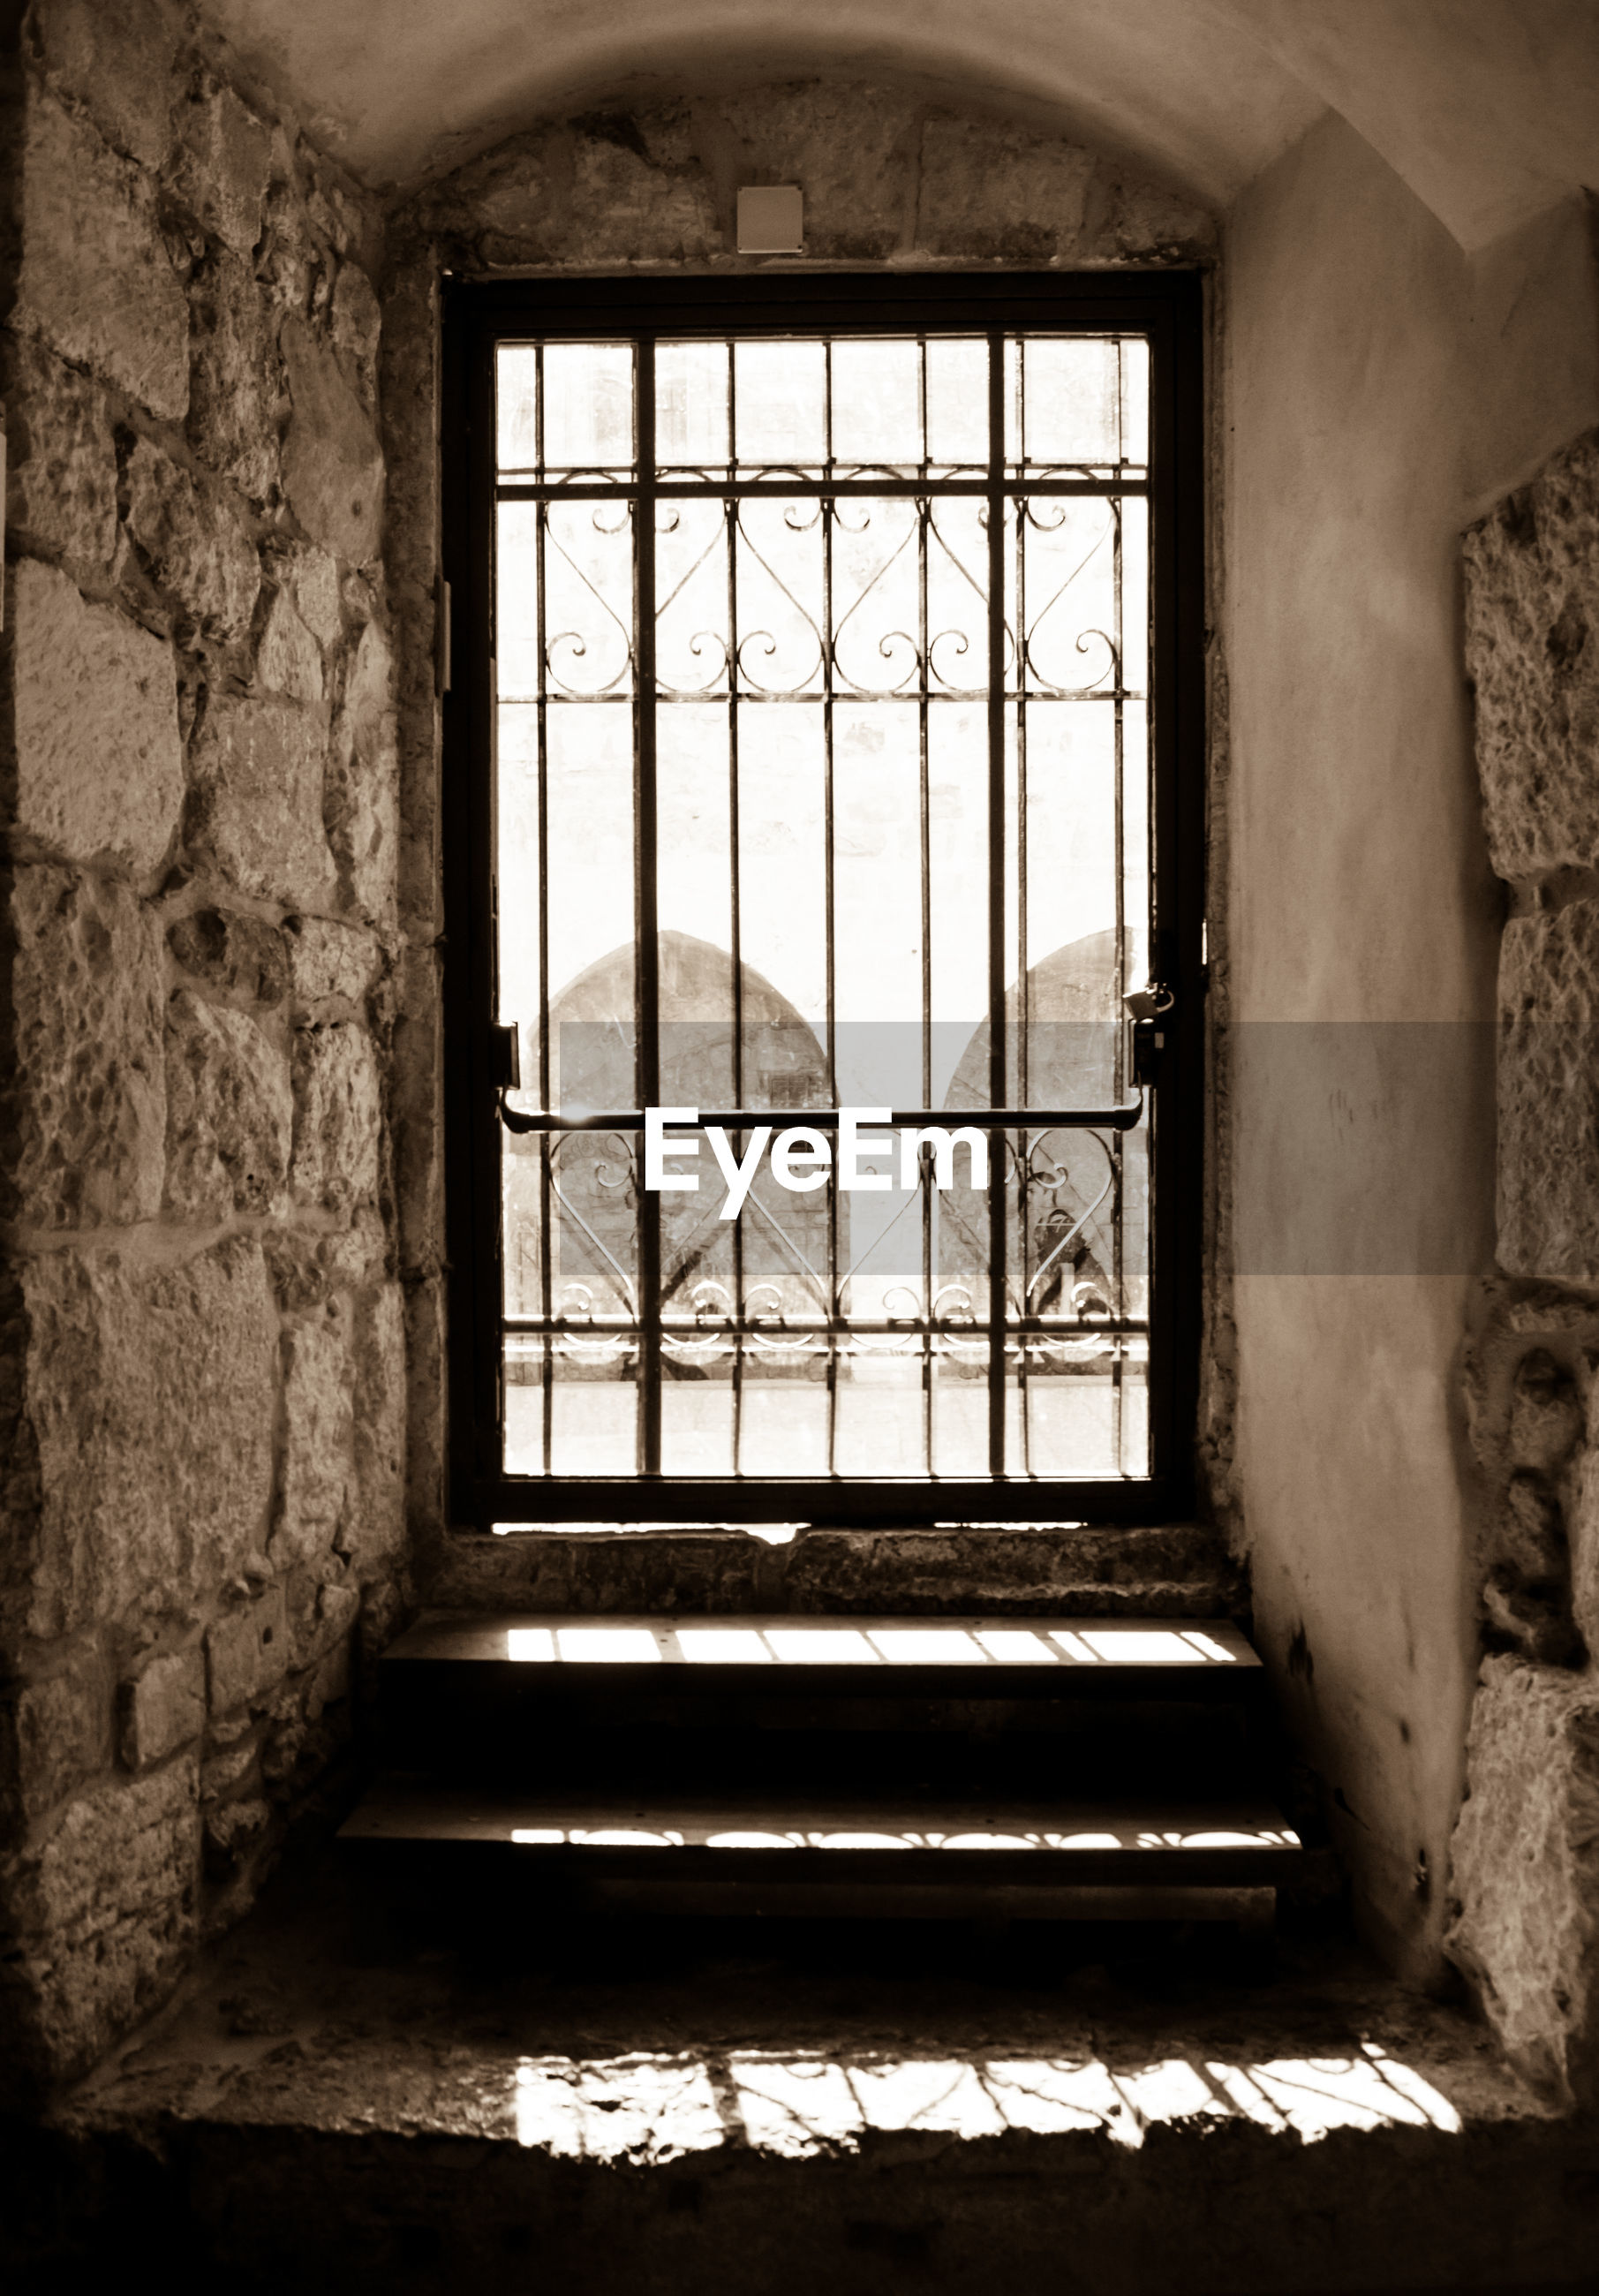 indoors, window, architecture, built structure, abandoned, glass - material, old, transparent, obsolete, house, damaged, door, run-down, closed, interior, day, home interior, deterioration, building, wall - building feature